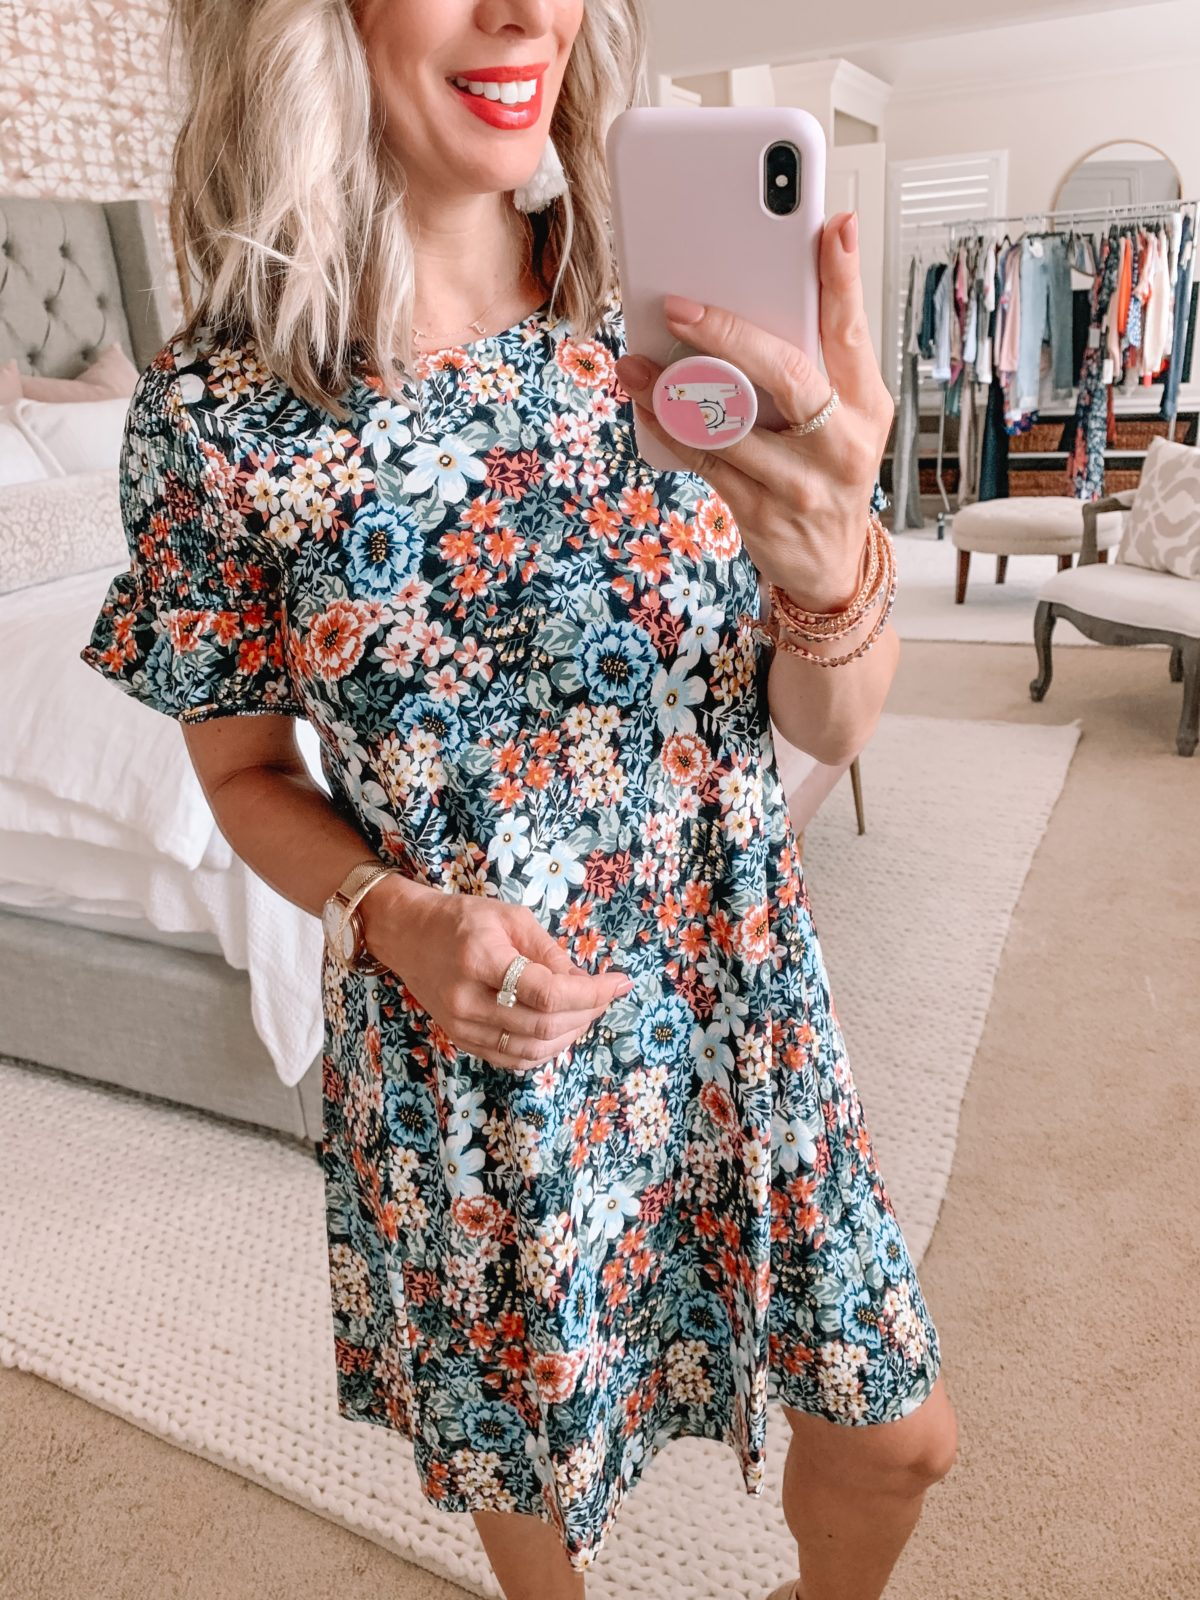 Dressing Room Finds Nordstrom and LOFT, Floral Swing Dress